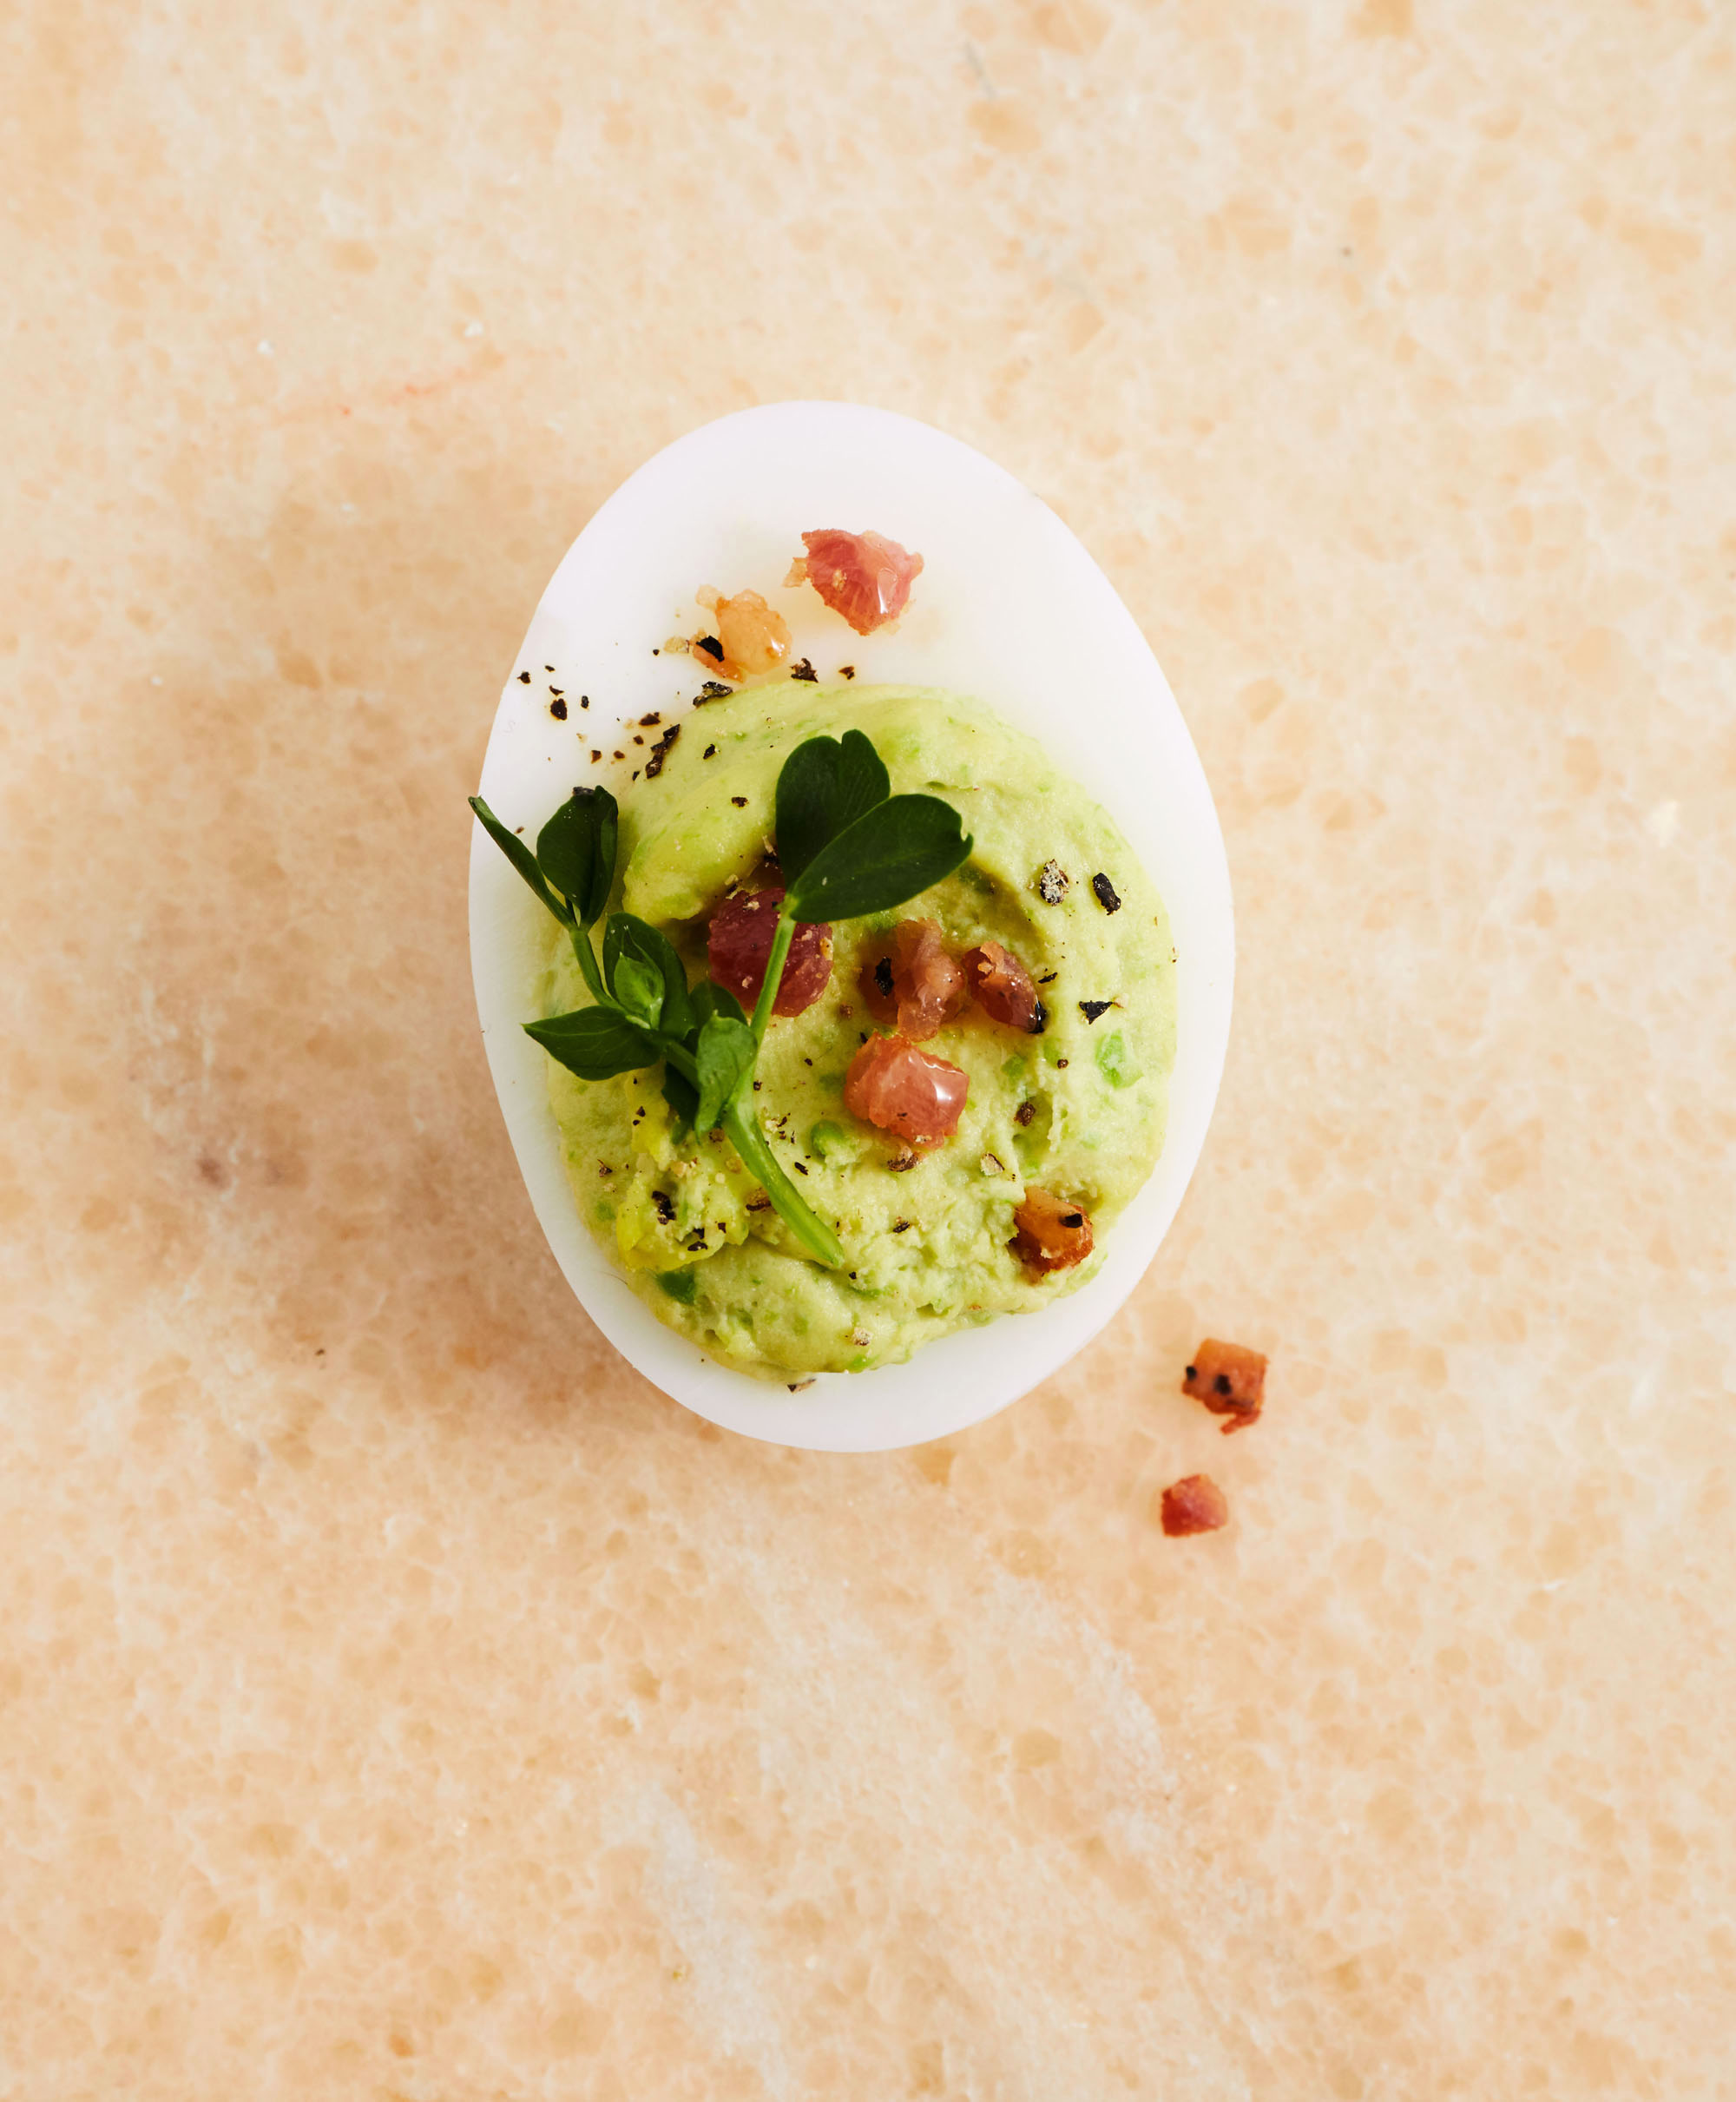 deviled eggs with ham and peas topped with fresh pea shoots